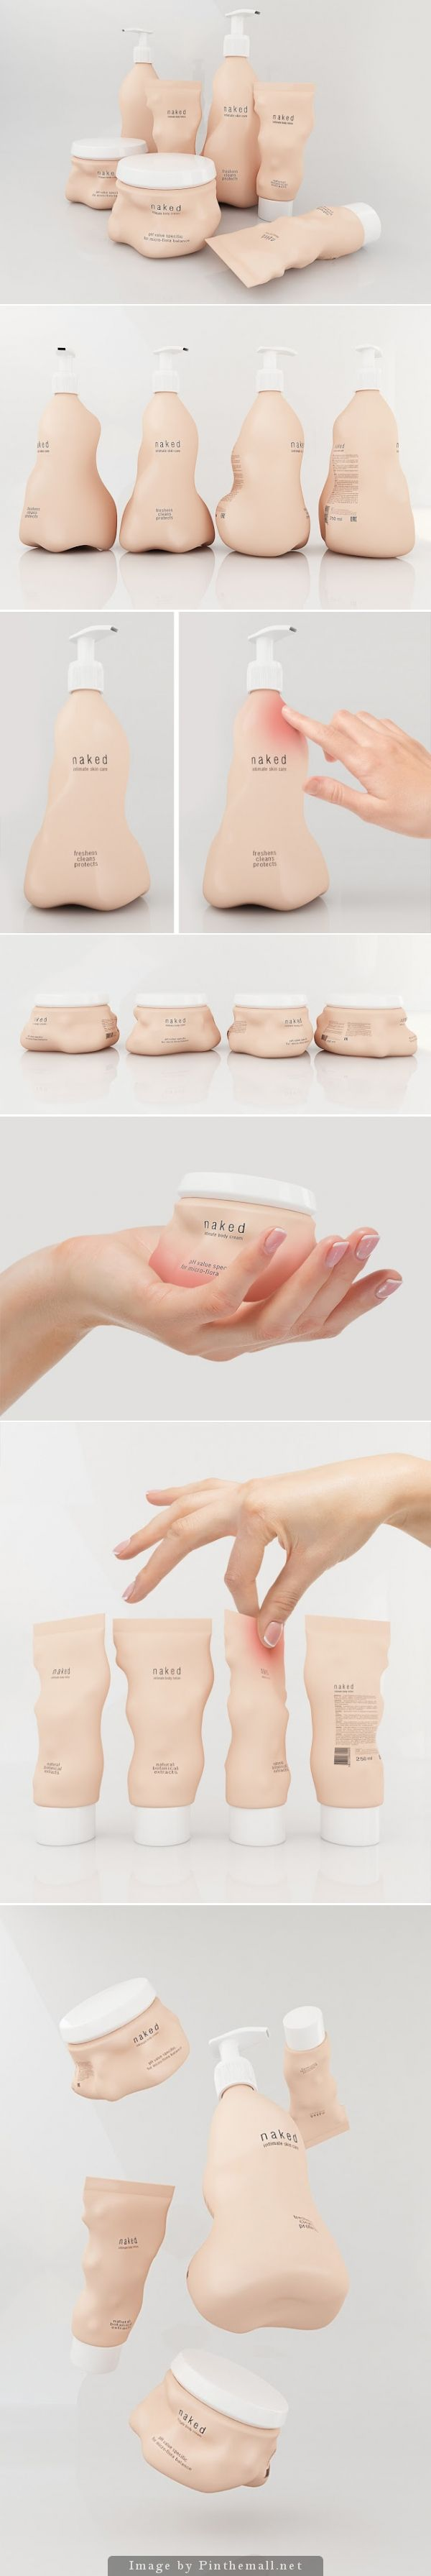 Naked - Intimate Care Products #Concept #packaging reacts to touch - http://www.packagingoftheworld.com/2014/11/naked-intimate-care-products-concept.html